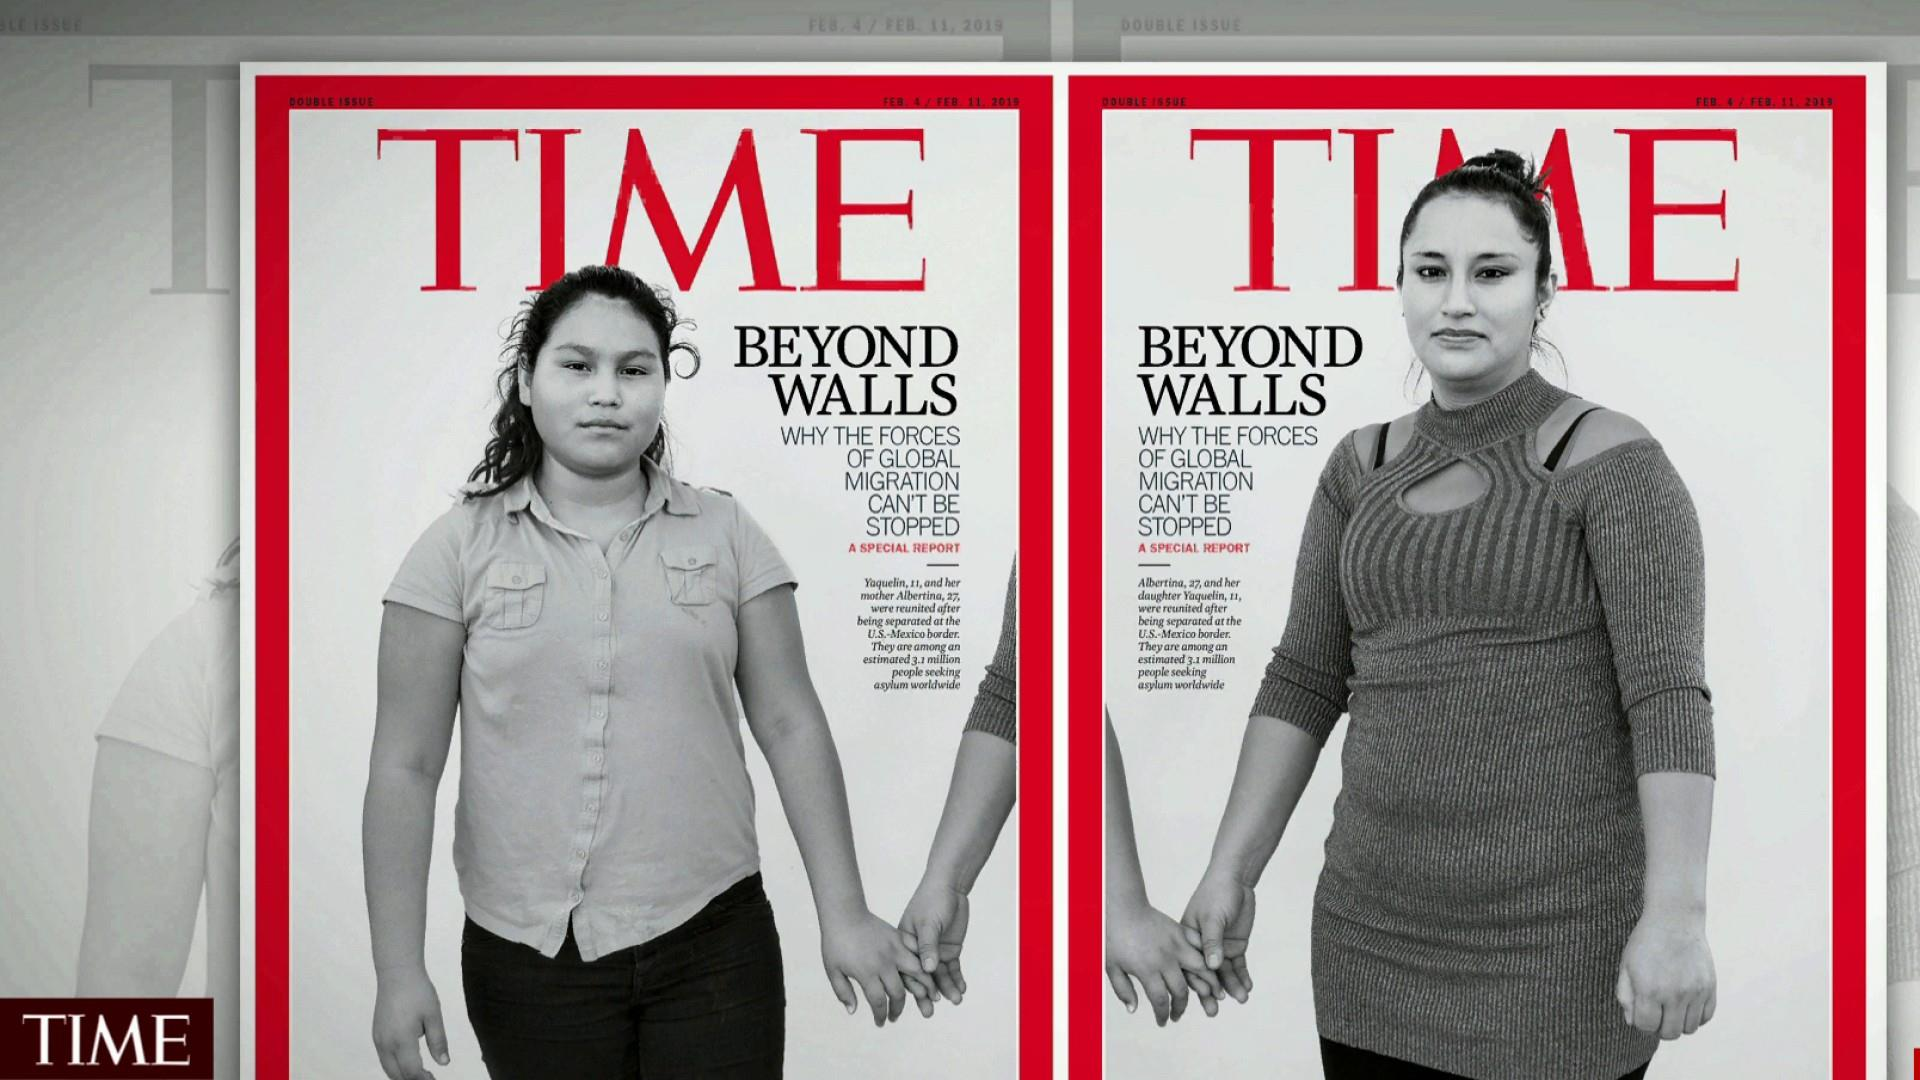 Time unveils in-depth report on global migration